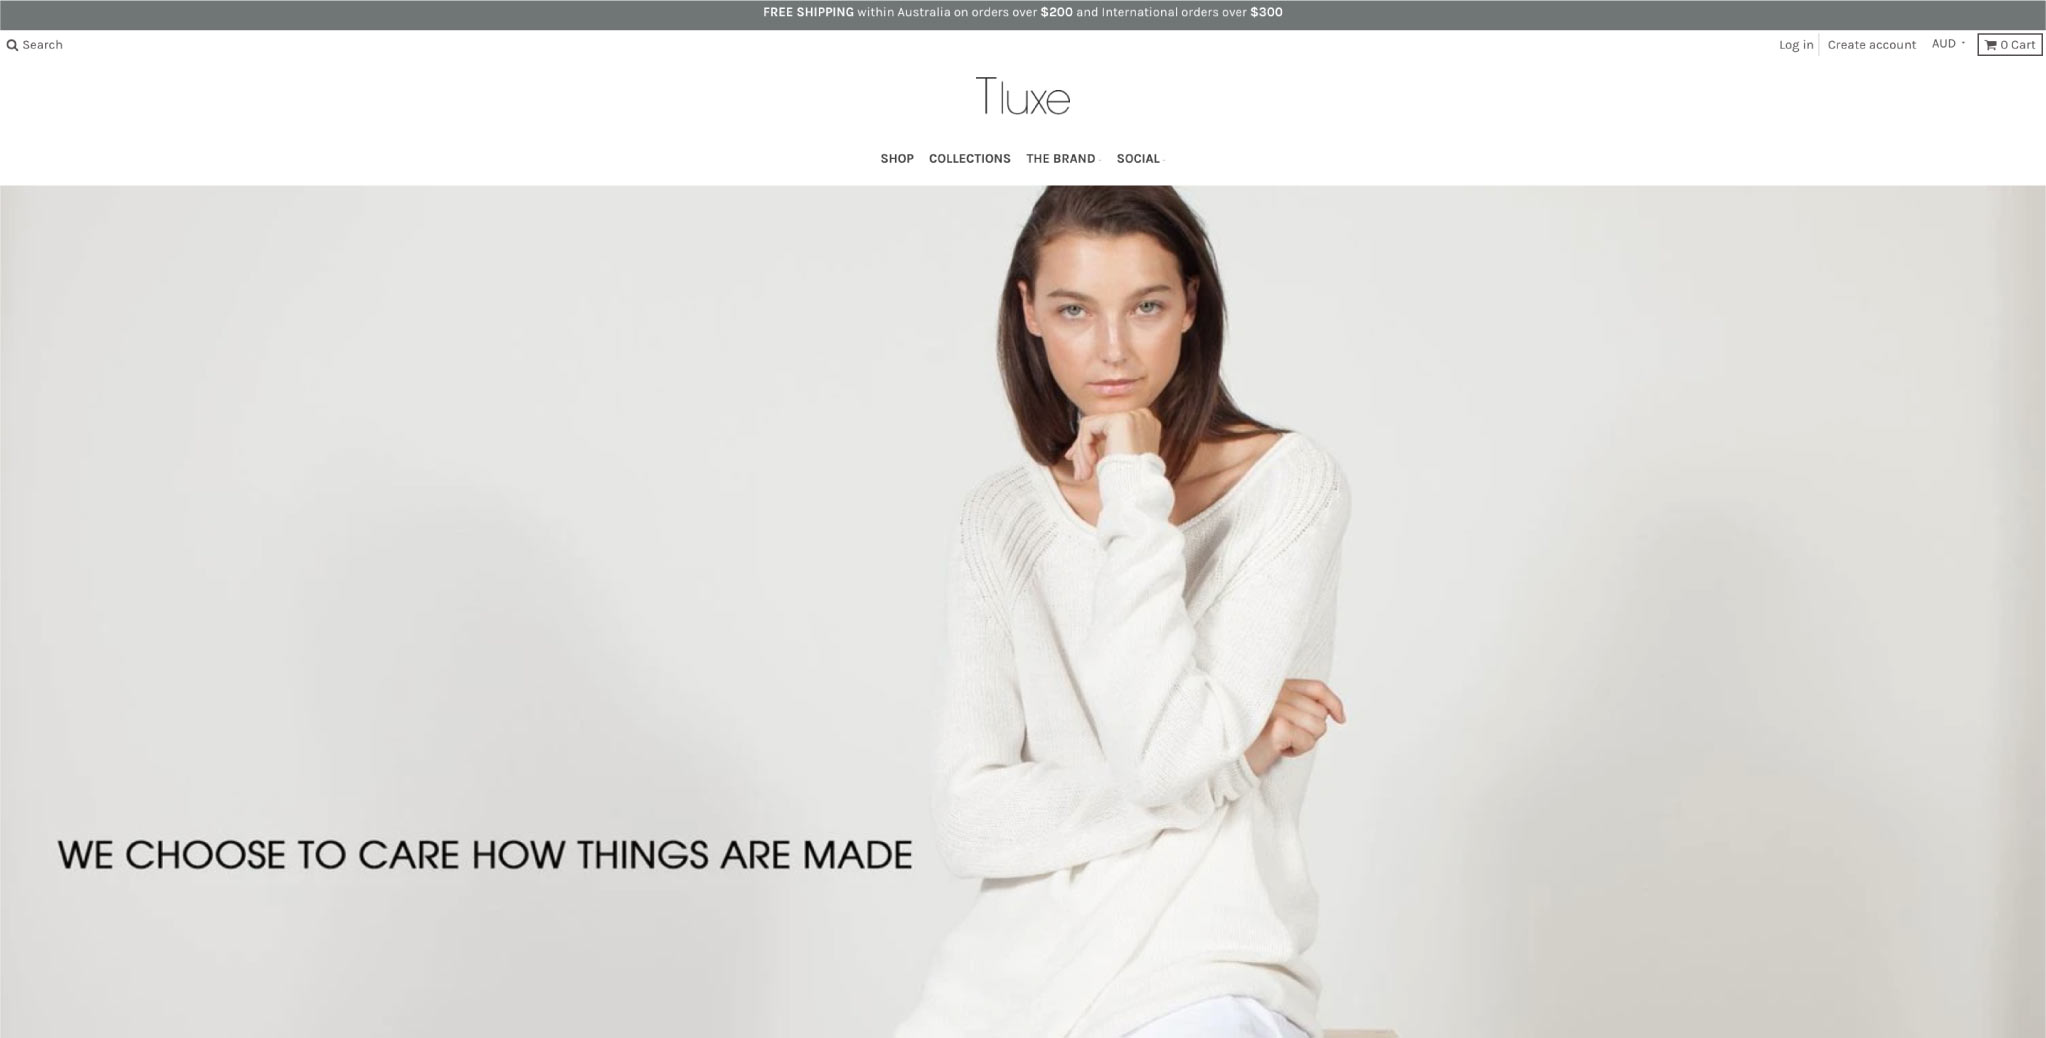 Best Shopify Clothing stores - Tluxe